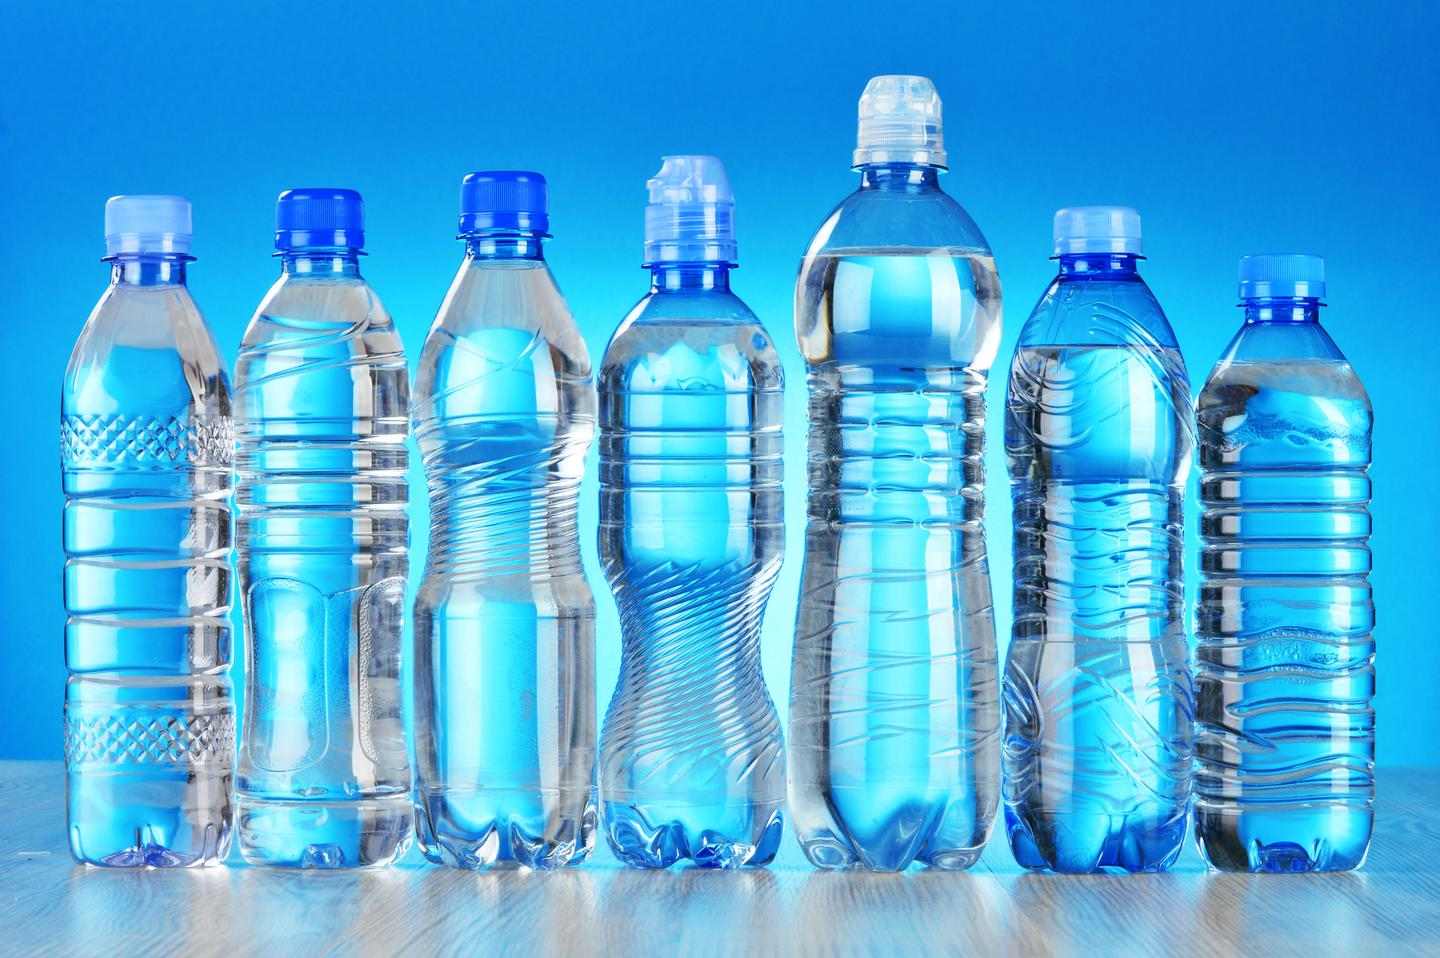 A new study suggests BPS (bisphenol S) confers the same potentially hazardous effects as BPA